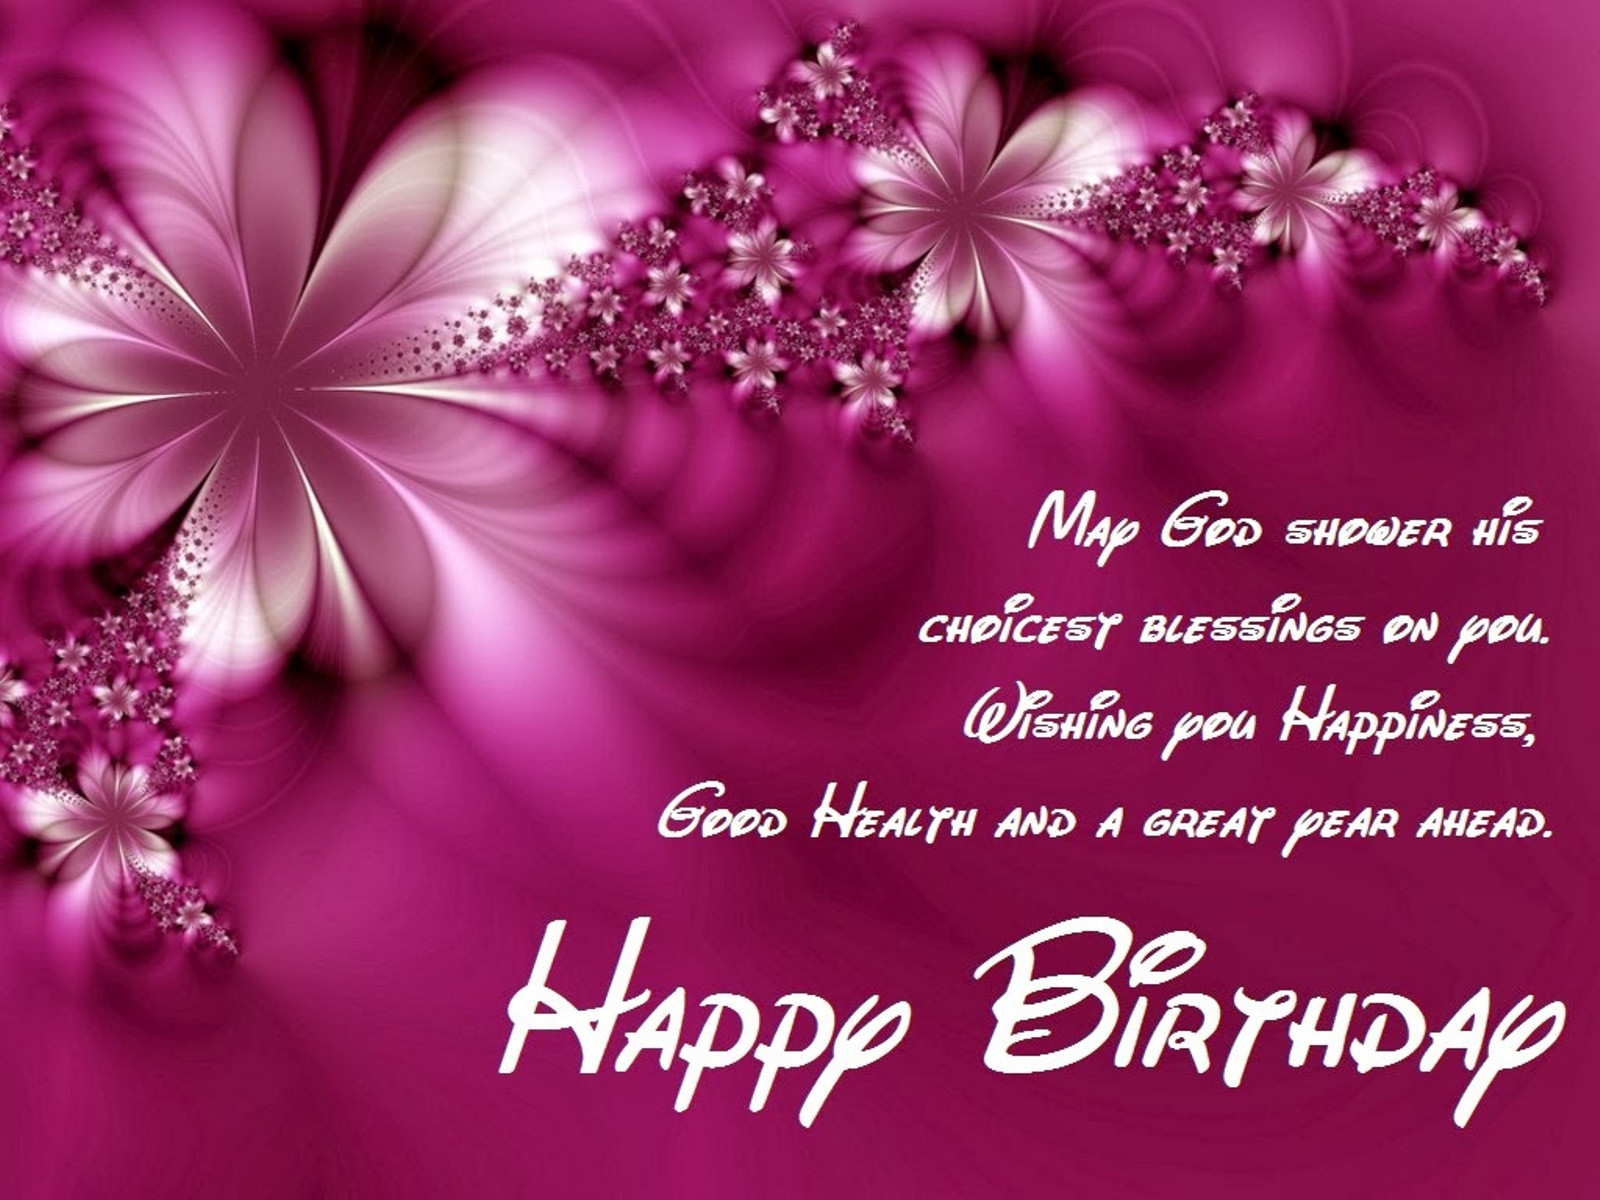 Best ideas about Quote Birthday Wishes . Save or Pin Happy Birthday Quotes – Happy Birthday Now.